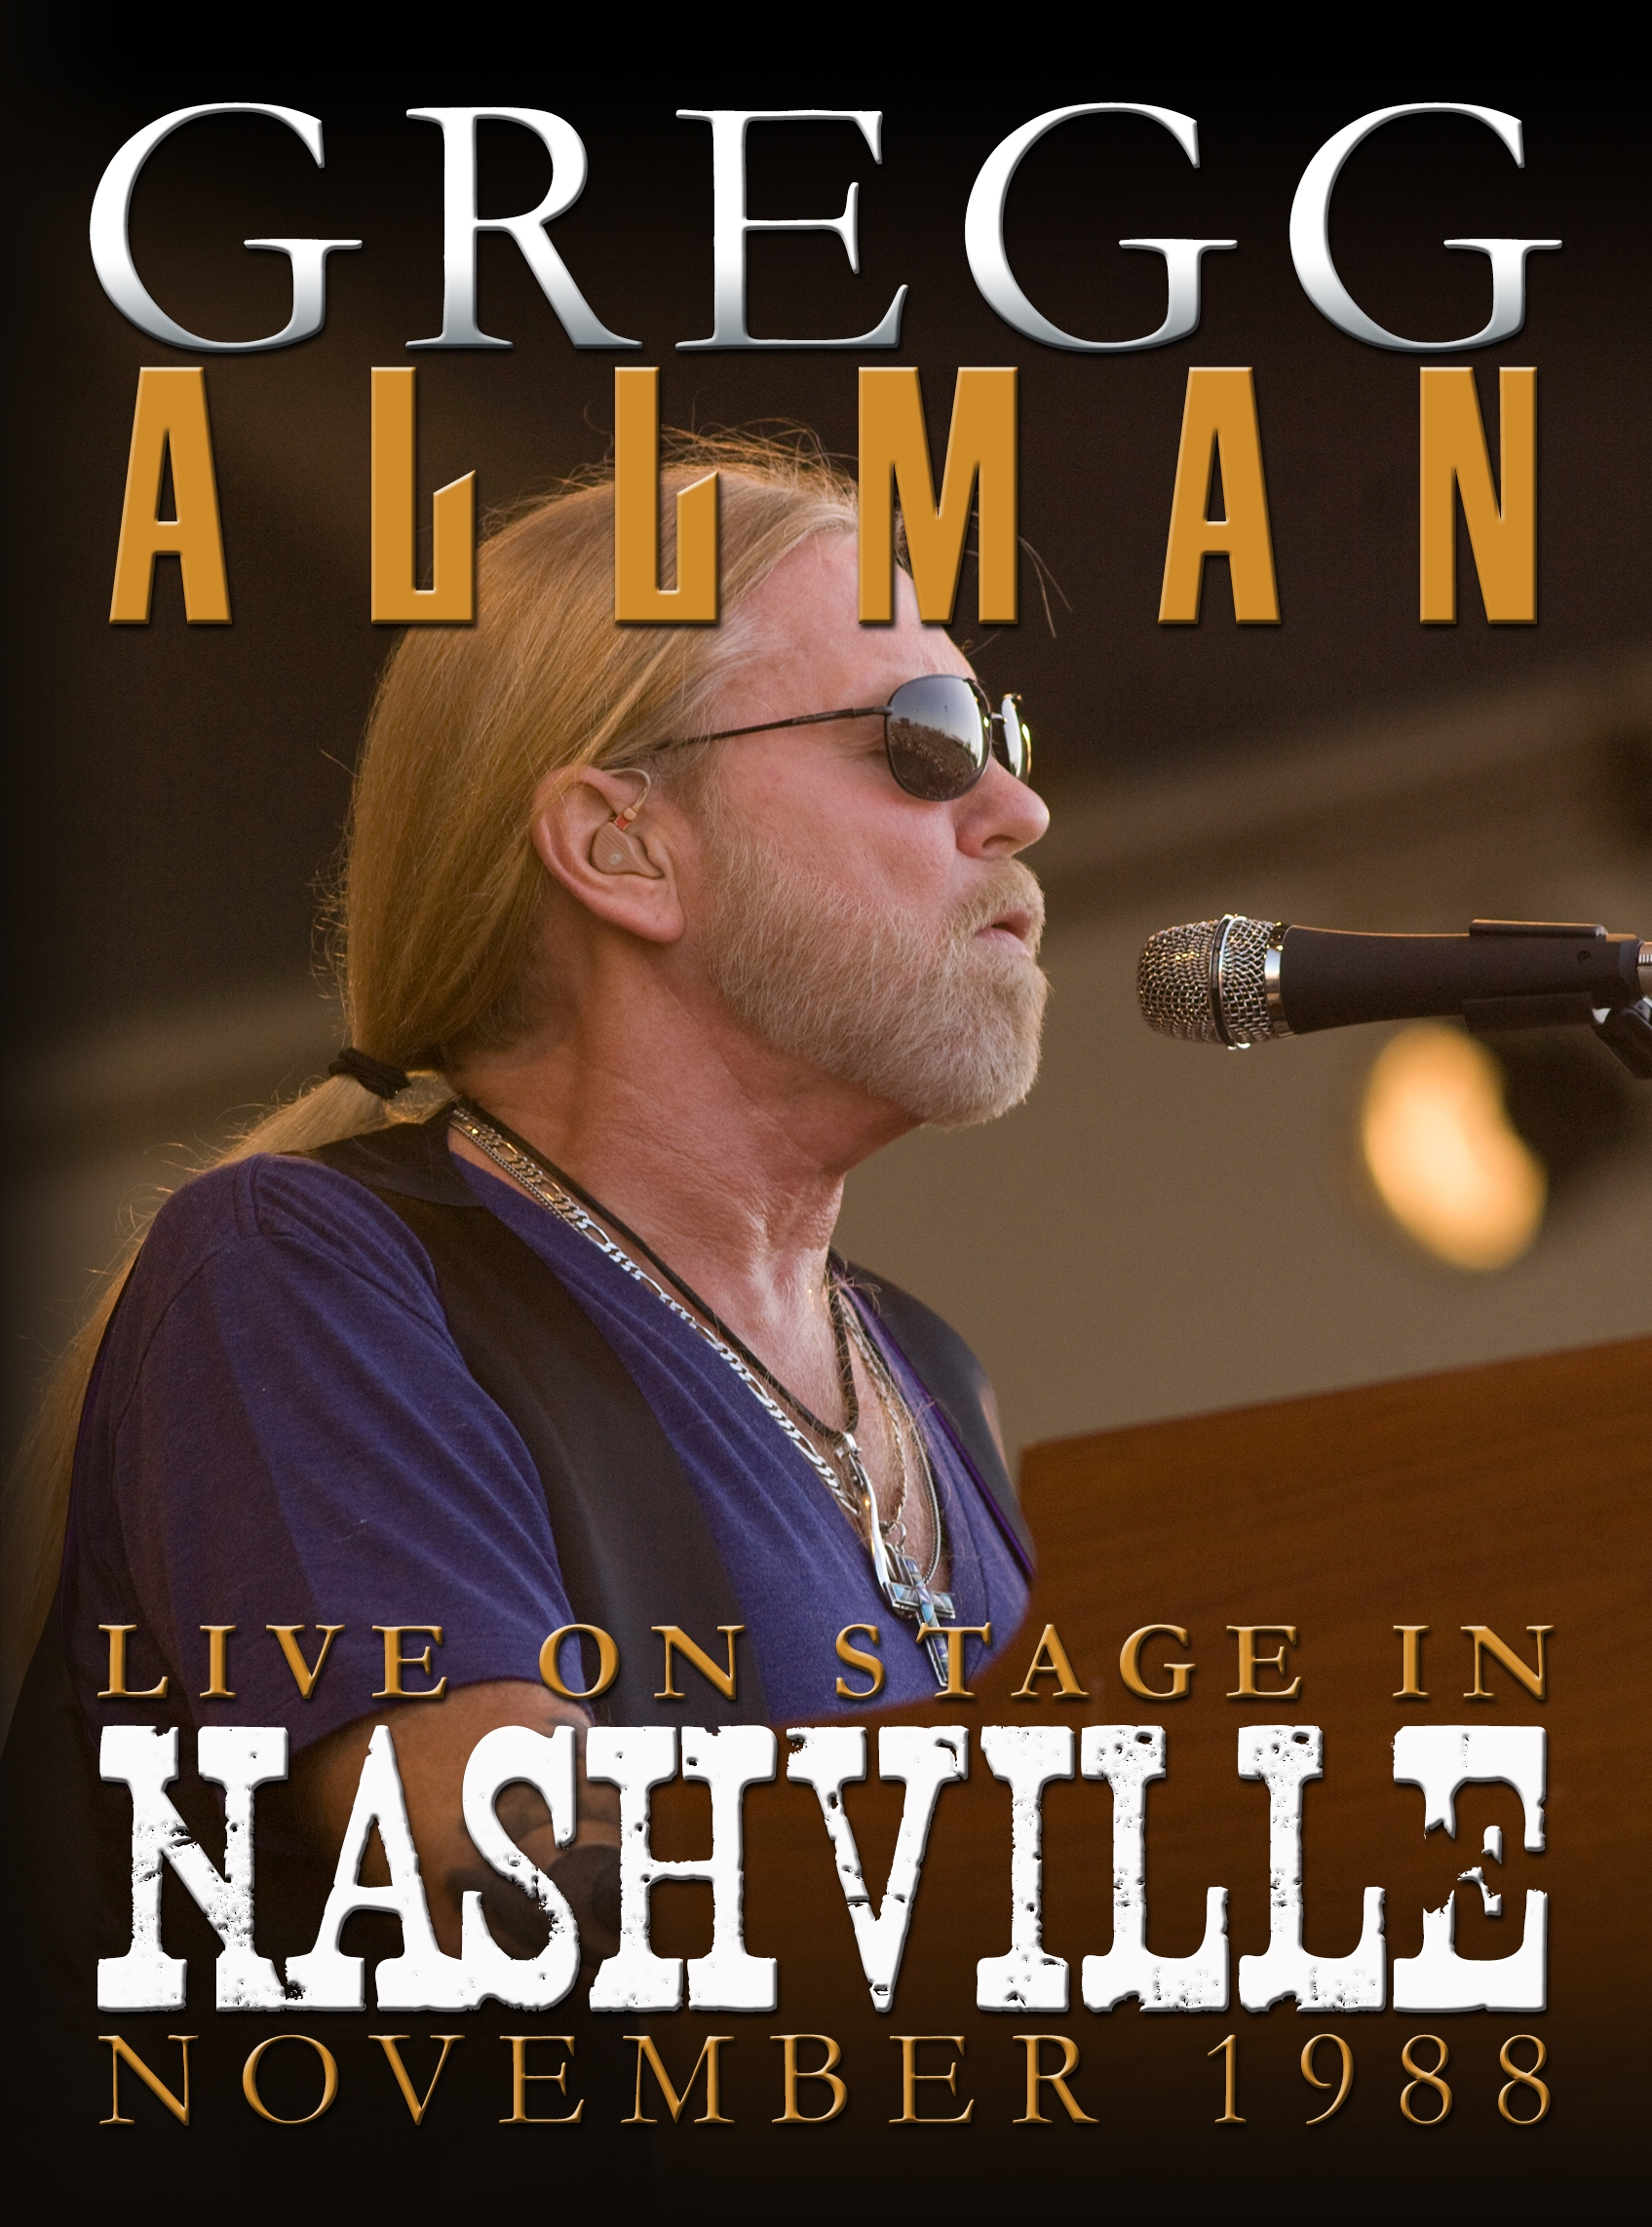 Live On Stage In Nashville 1988 (DVD)